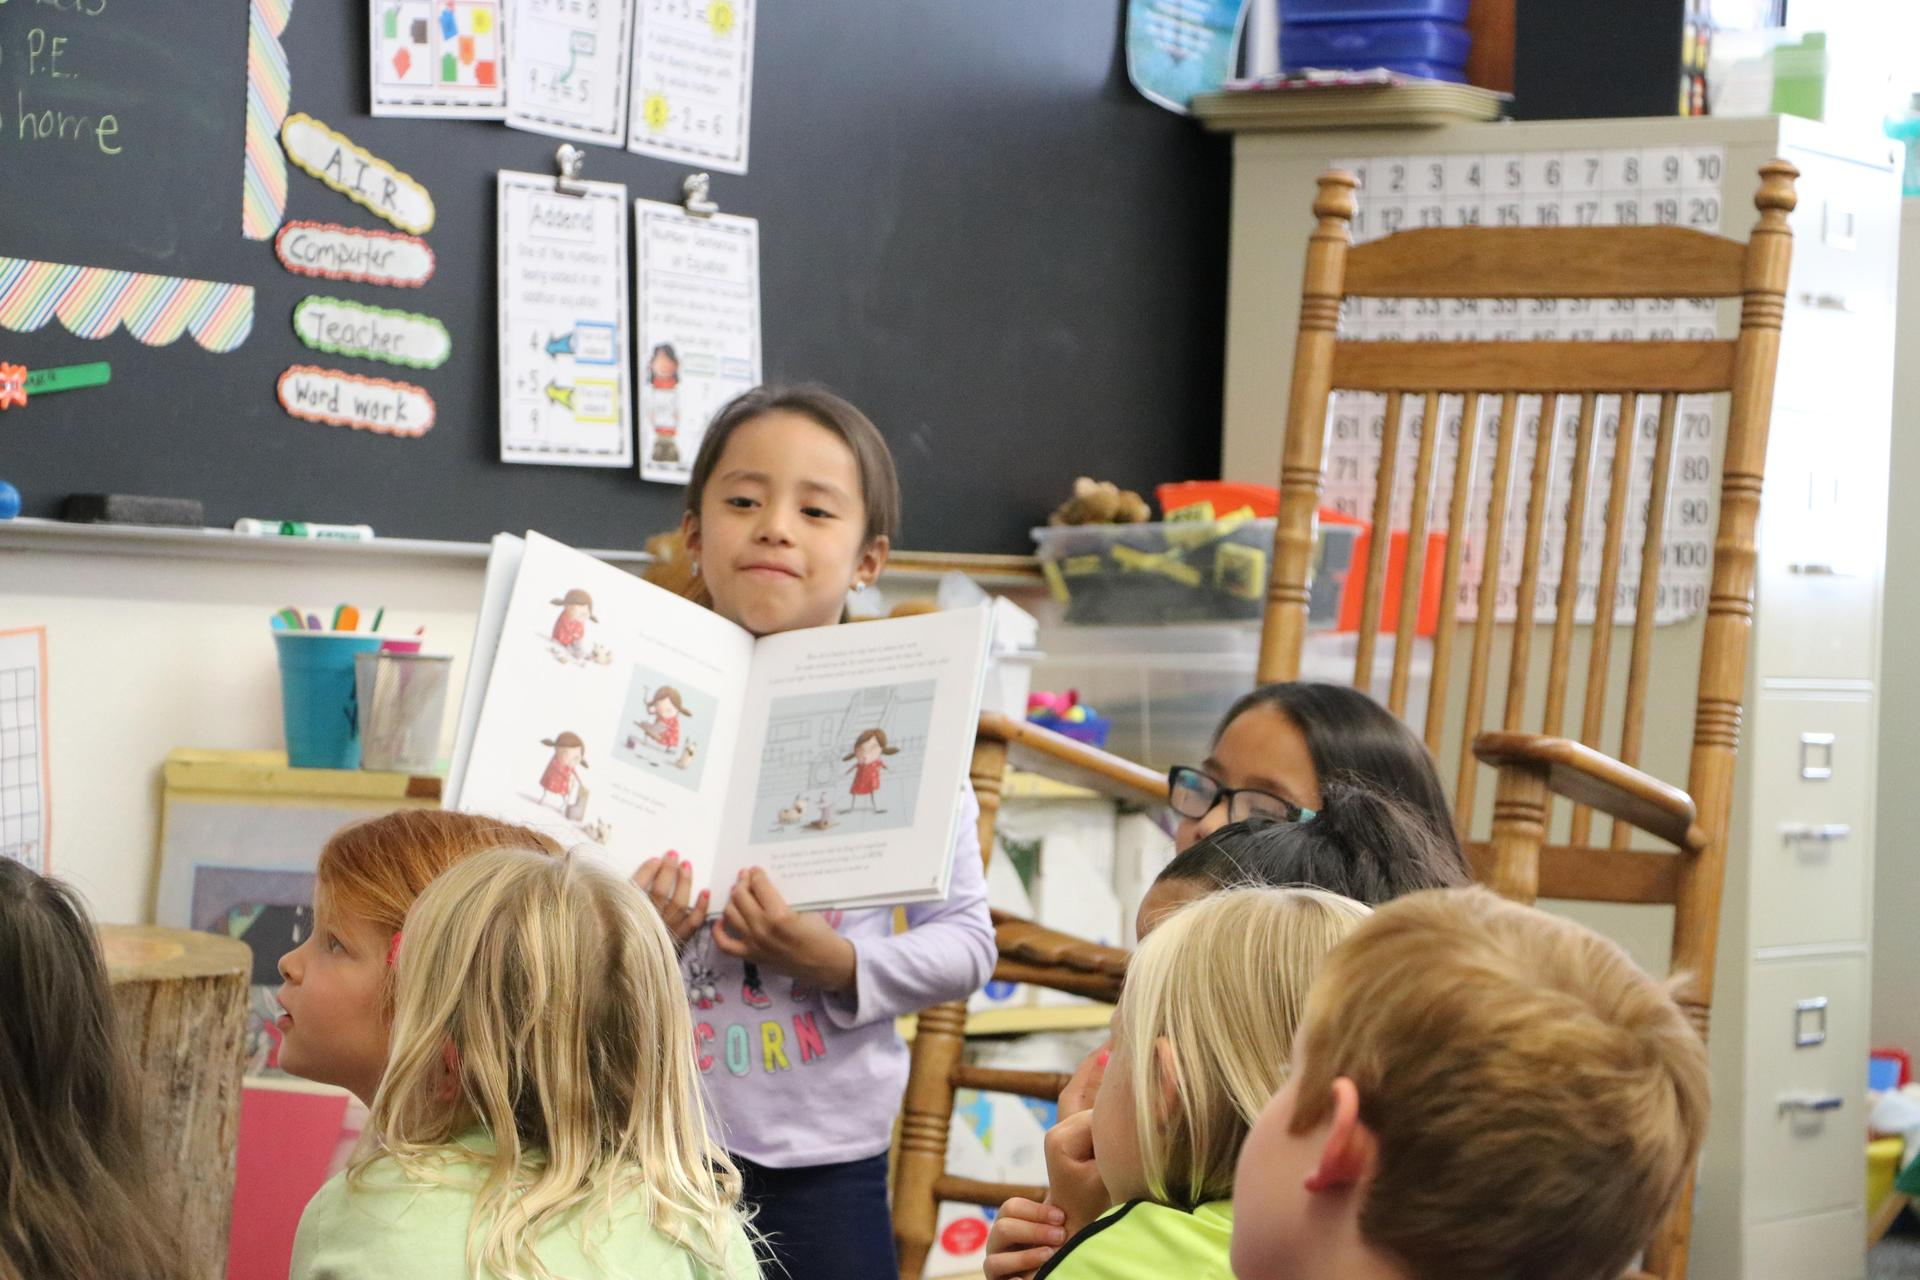 A student shares a picture book with classmates.